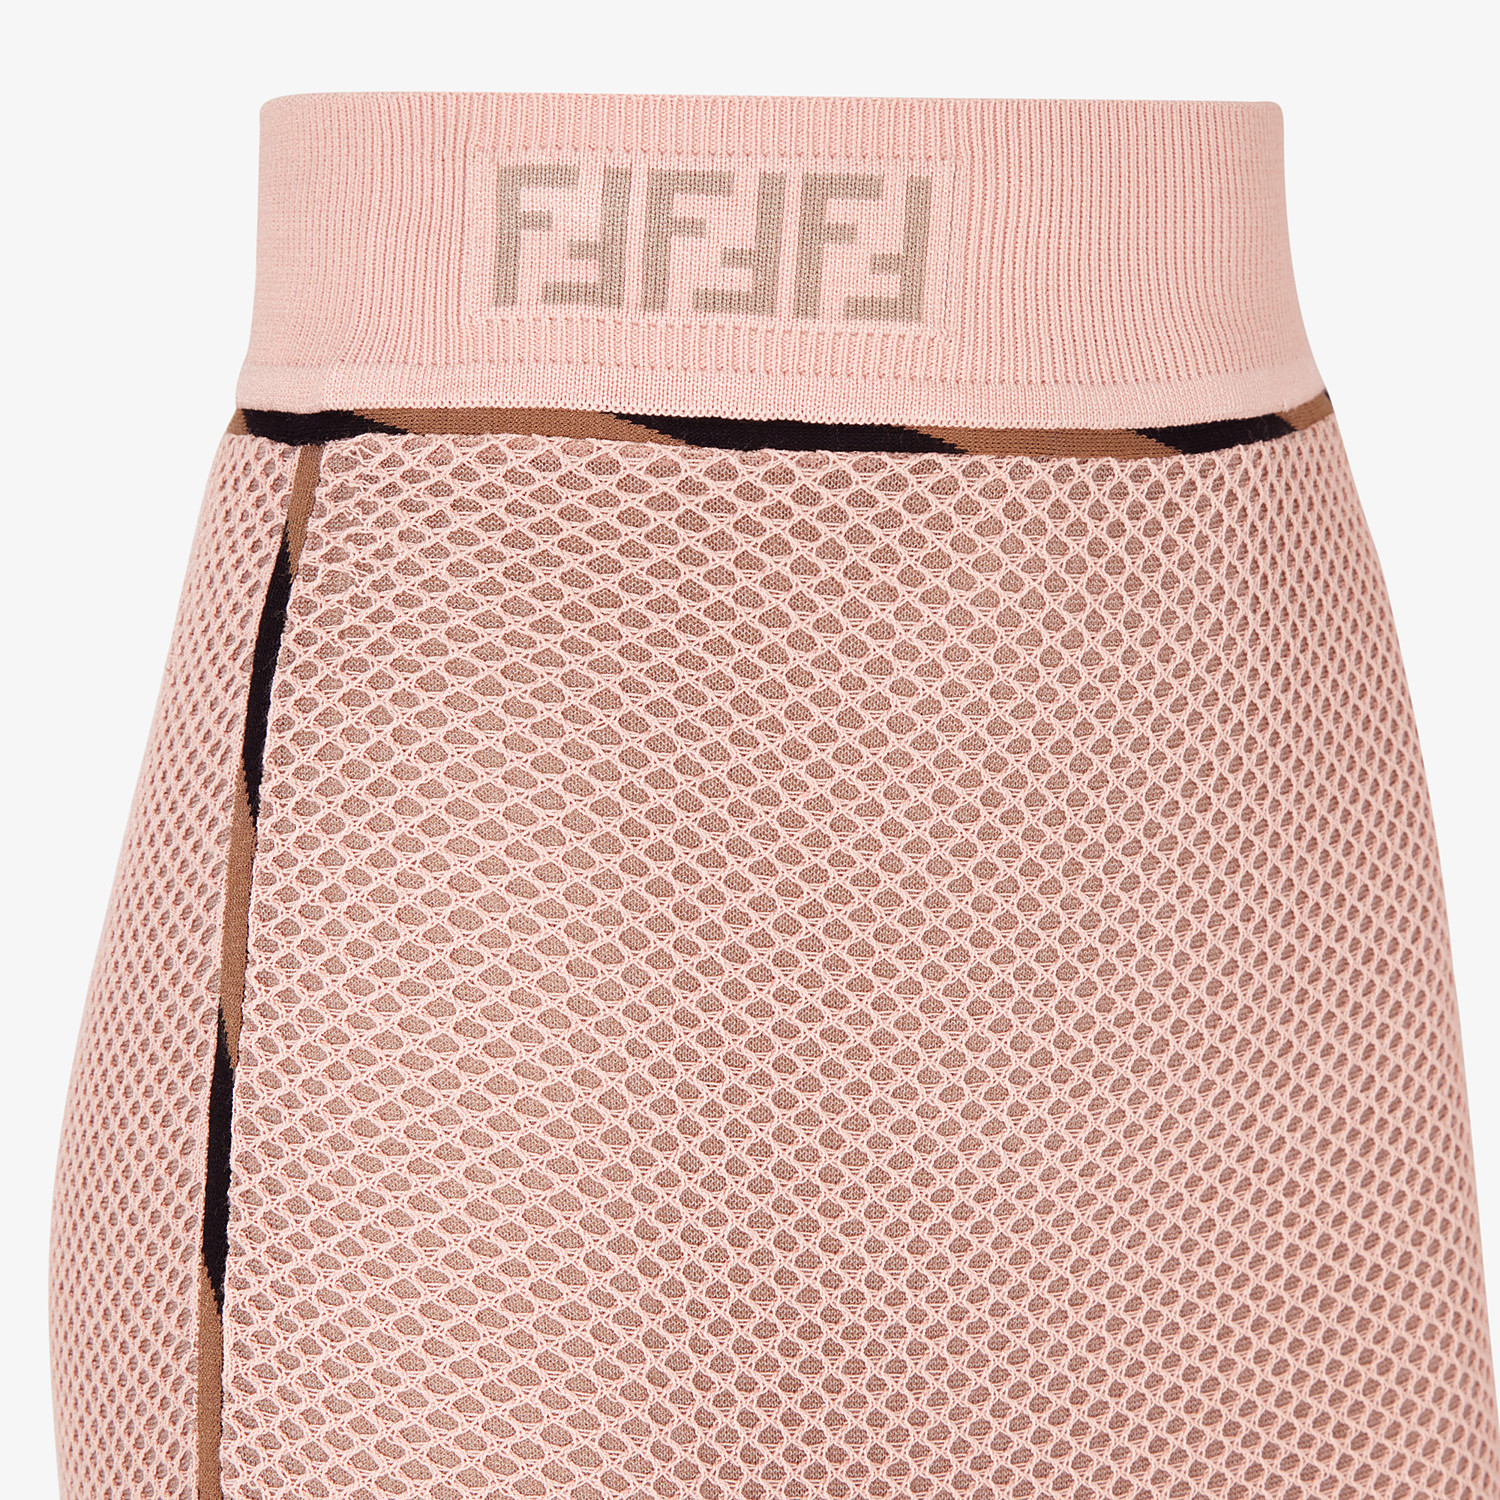 FENDI SKIRT - Pink mesh skirt - view 3 detail